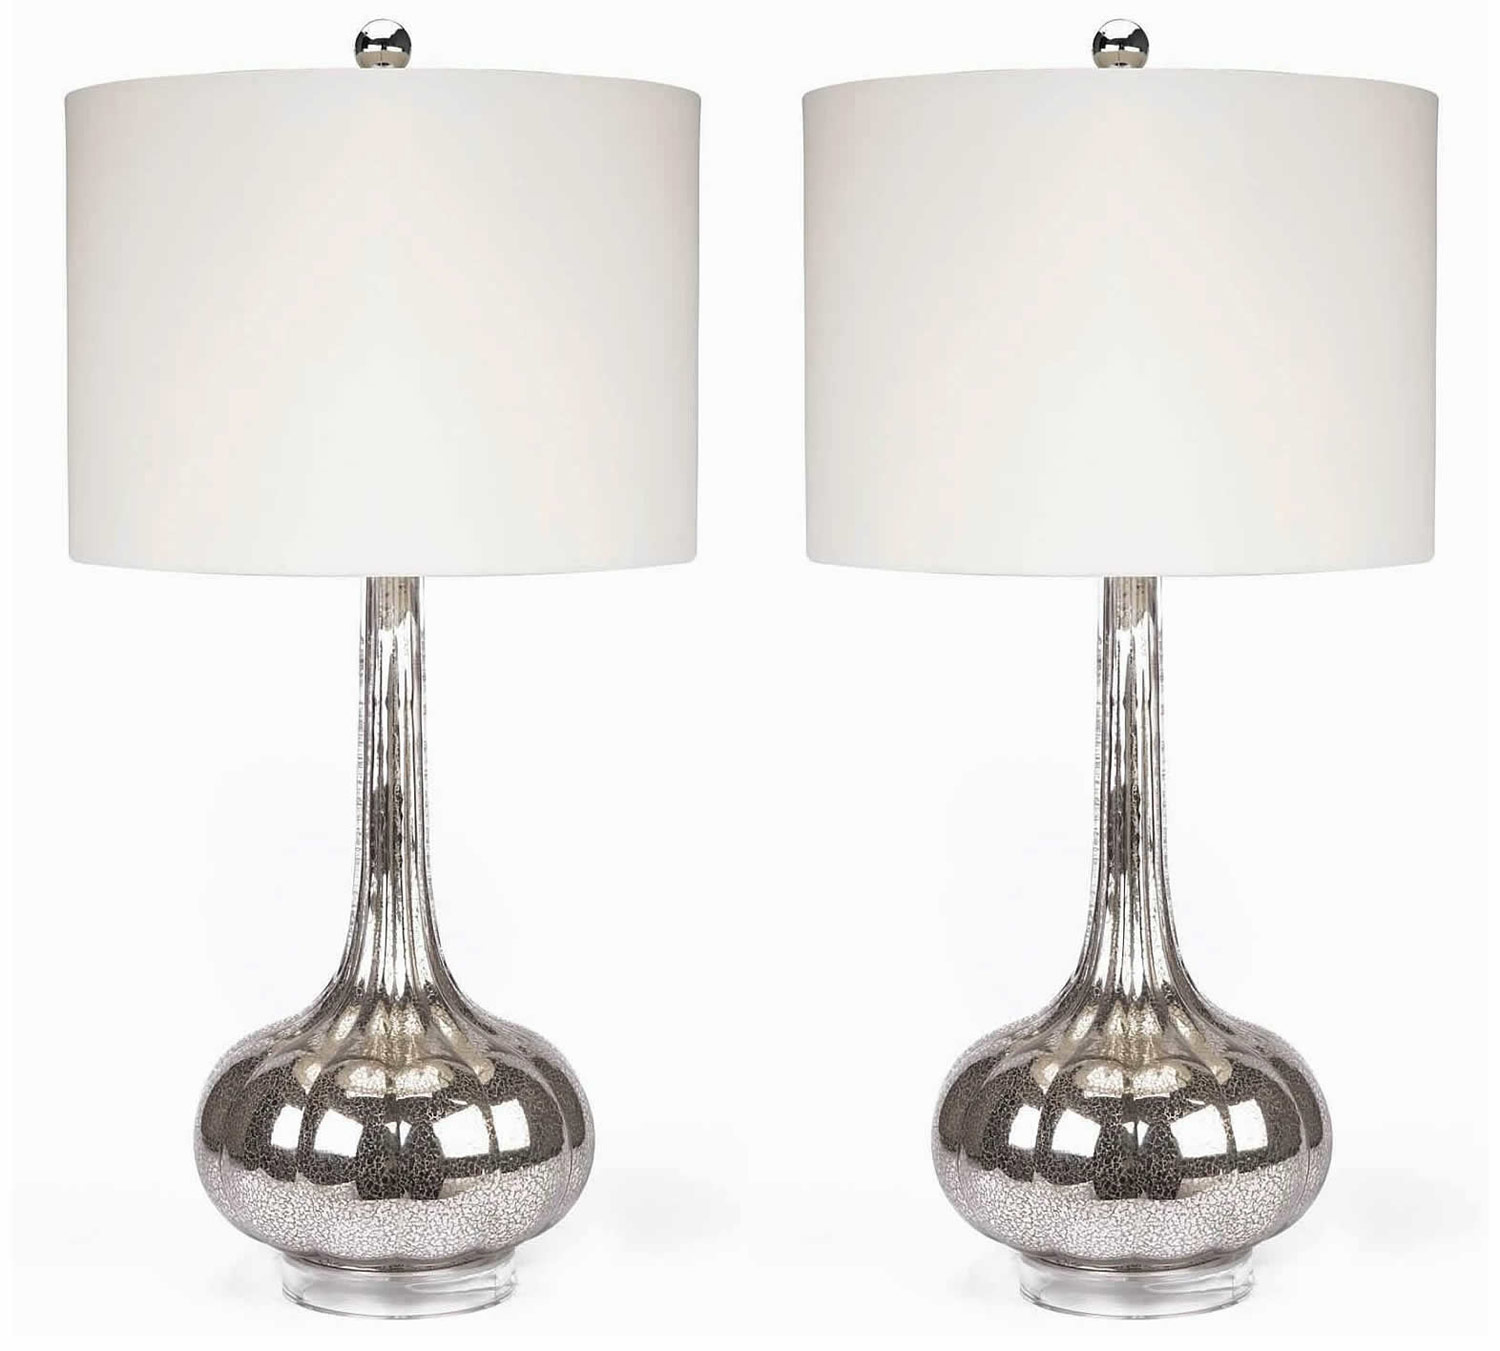 Abbyson Living Michelle 2 PC Glass Table Lamp Set - Silver